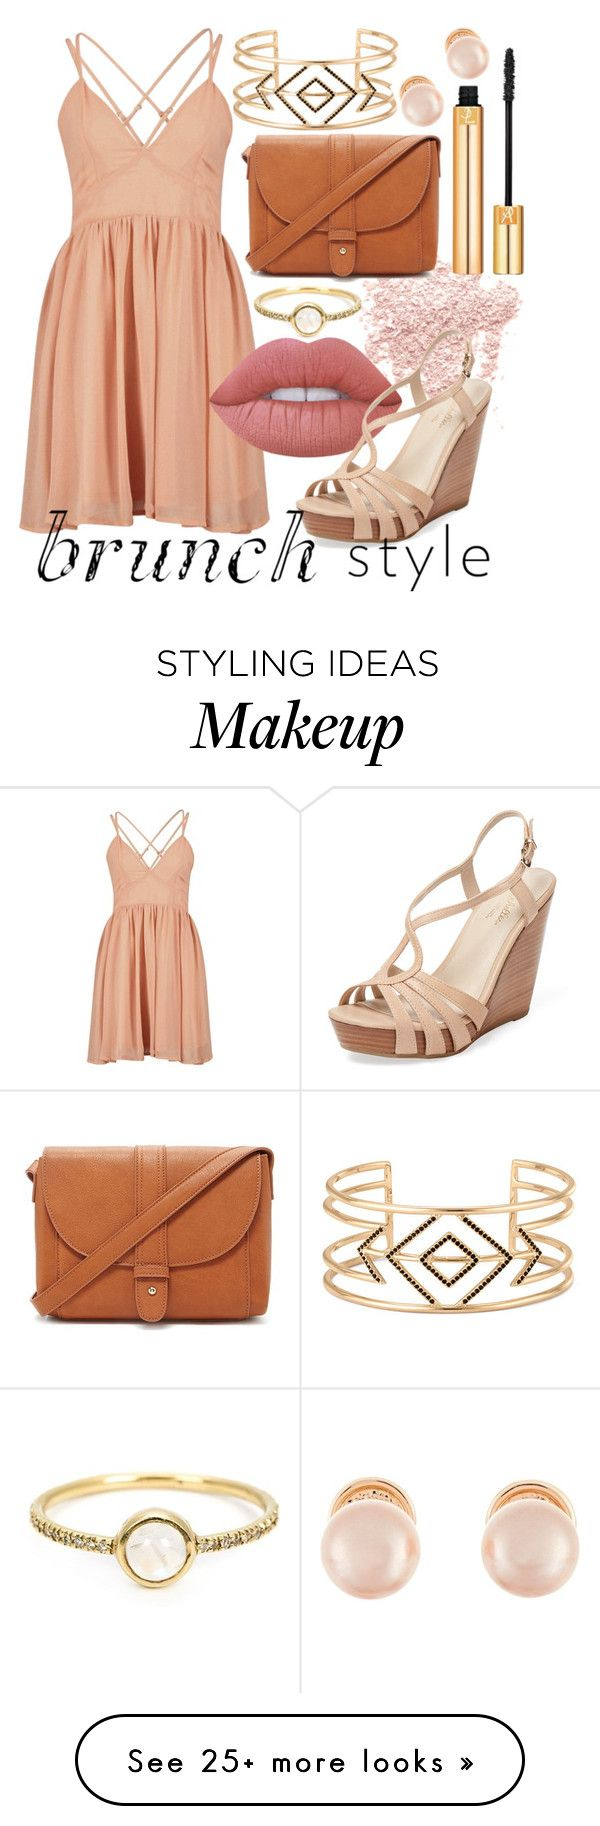 """""""Untitled #281"""" by em99h on Polyvore featuring Bare Escentuals, Yves Saint Laurent, Lime Crime, Seychelles, Forever 21, Stella & Dot, Kenneth Jay Lane and Irene Neuwirth"""